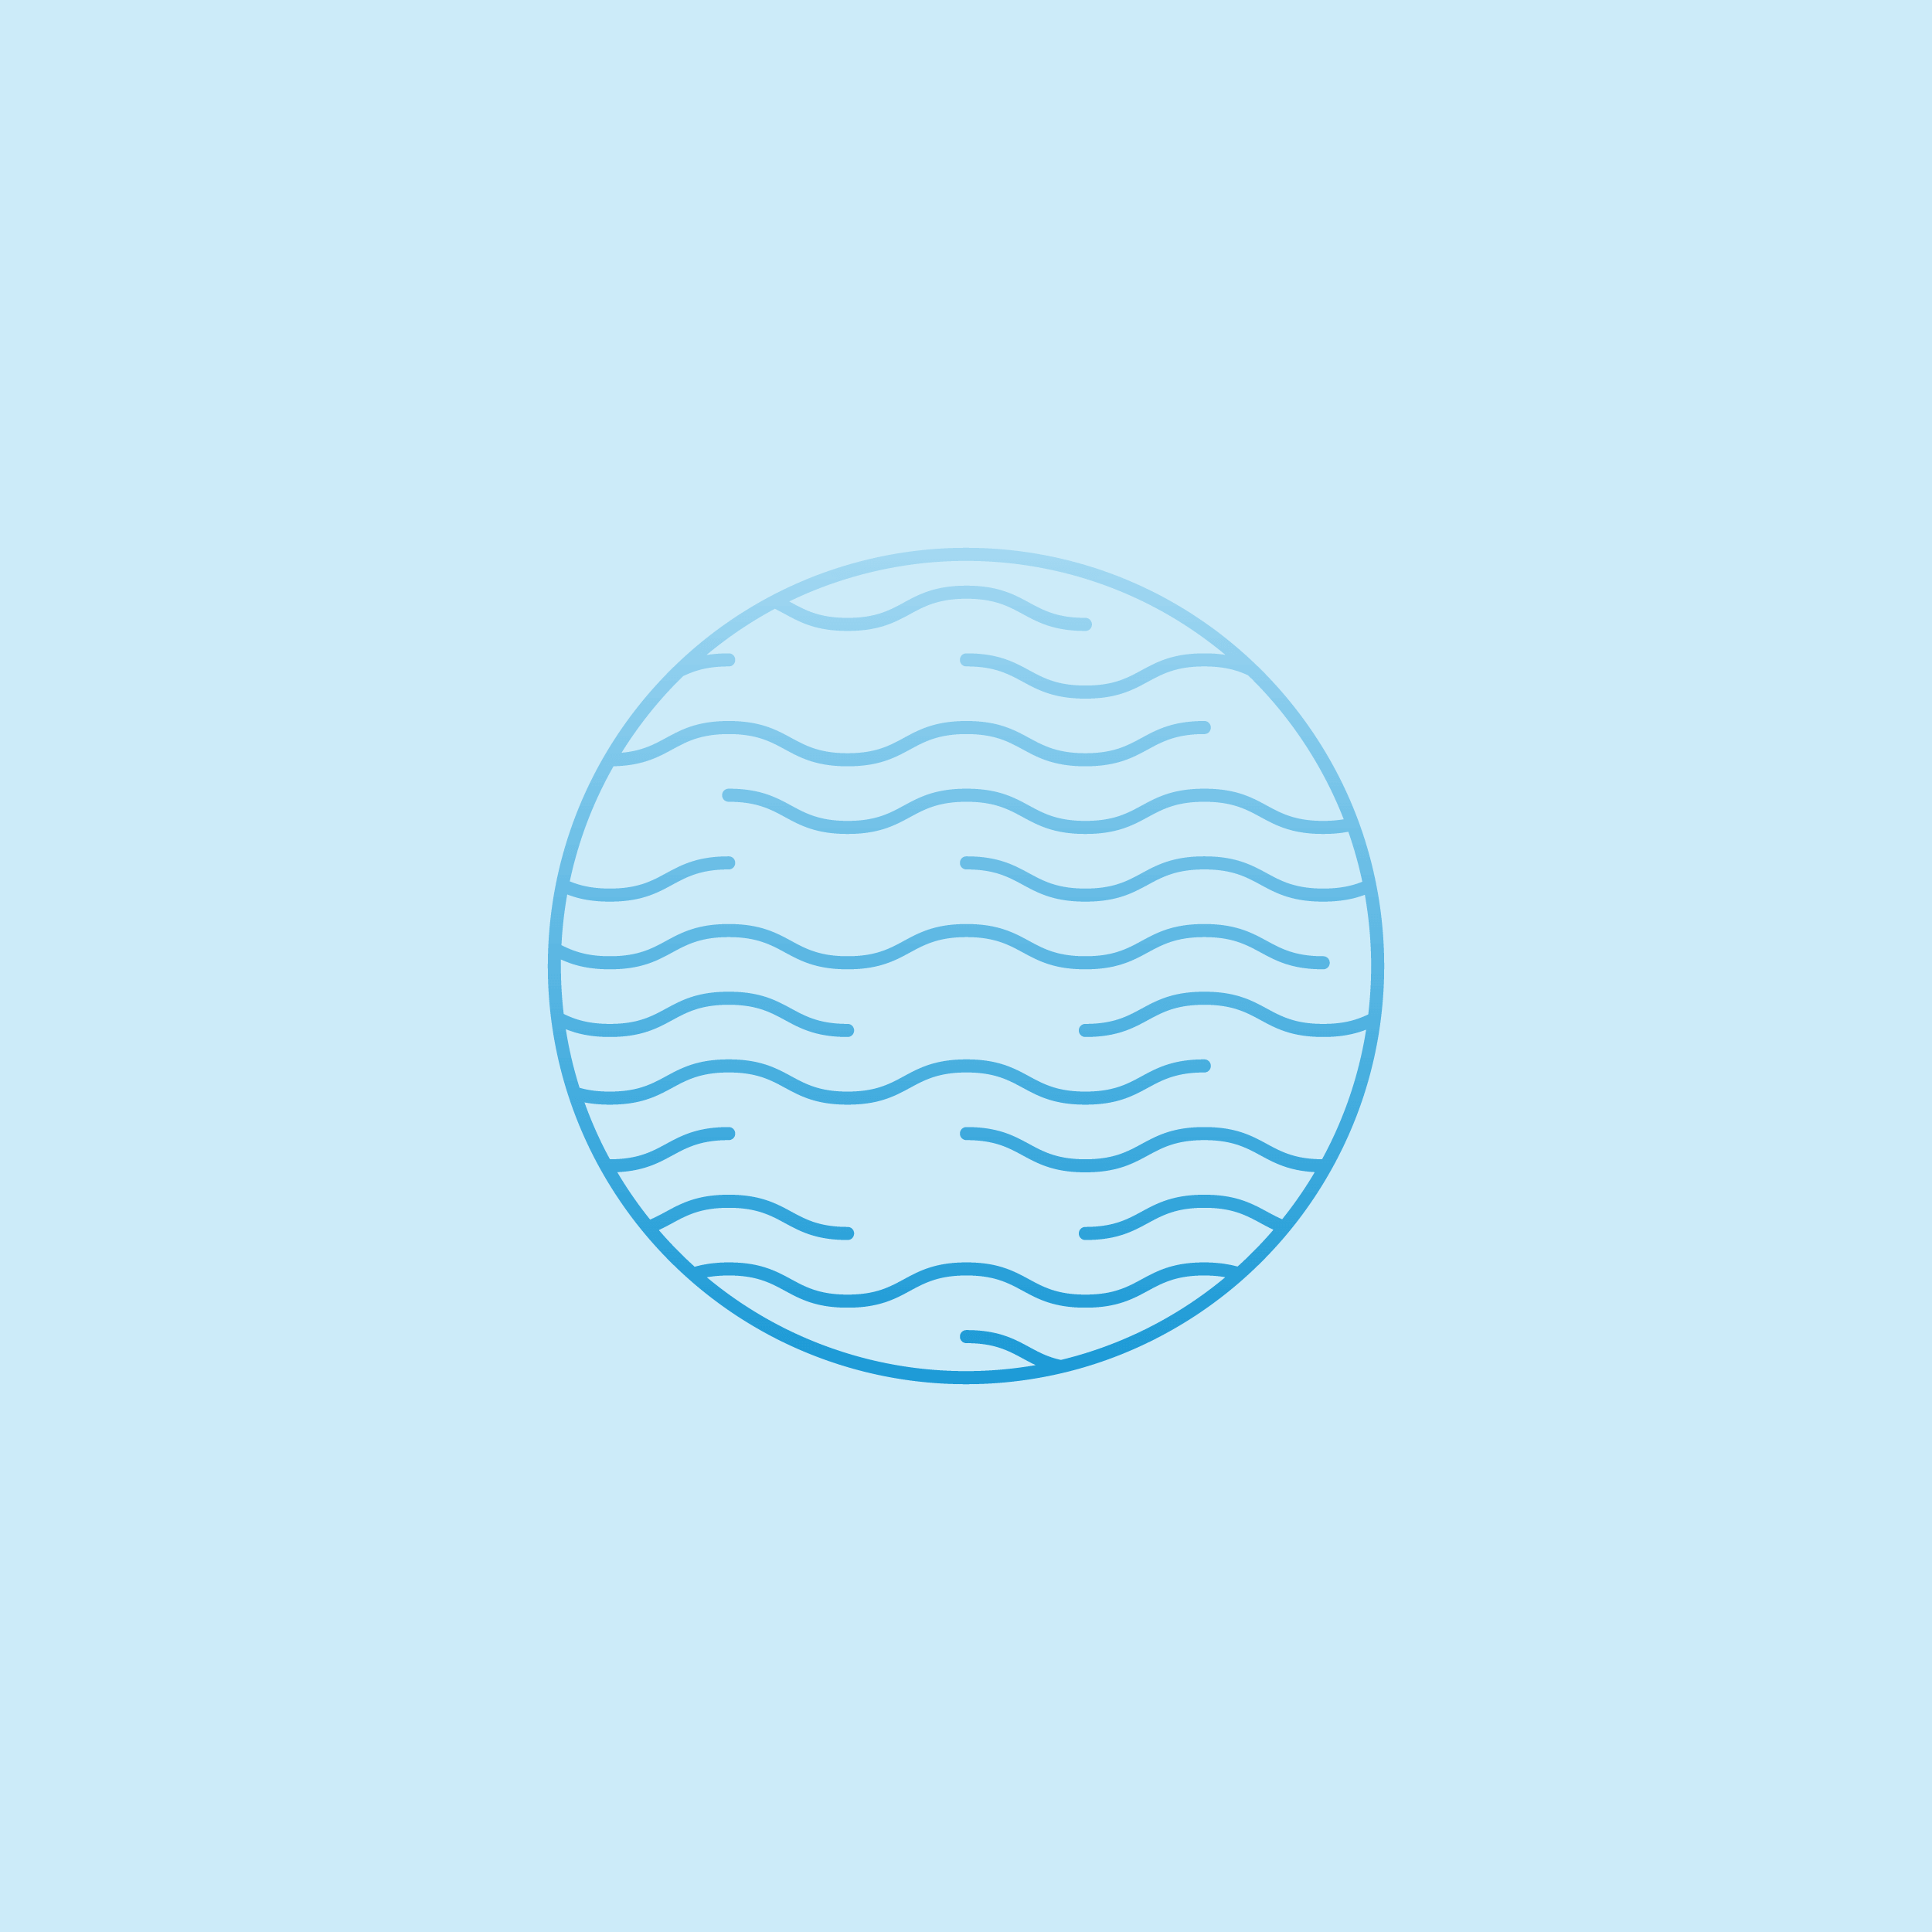 076-water